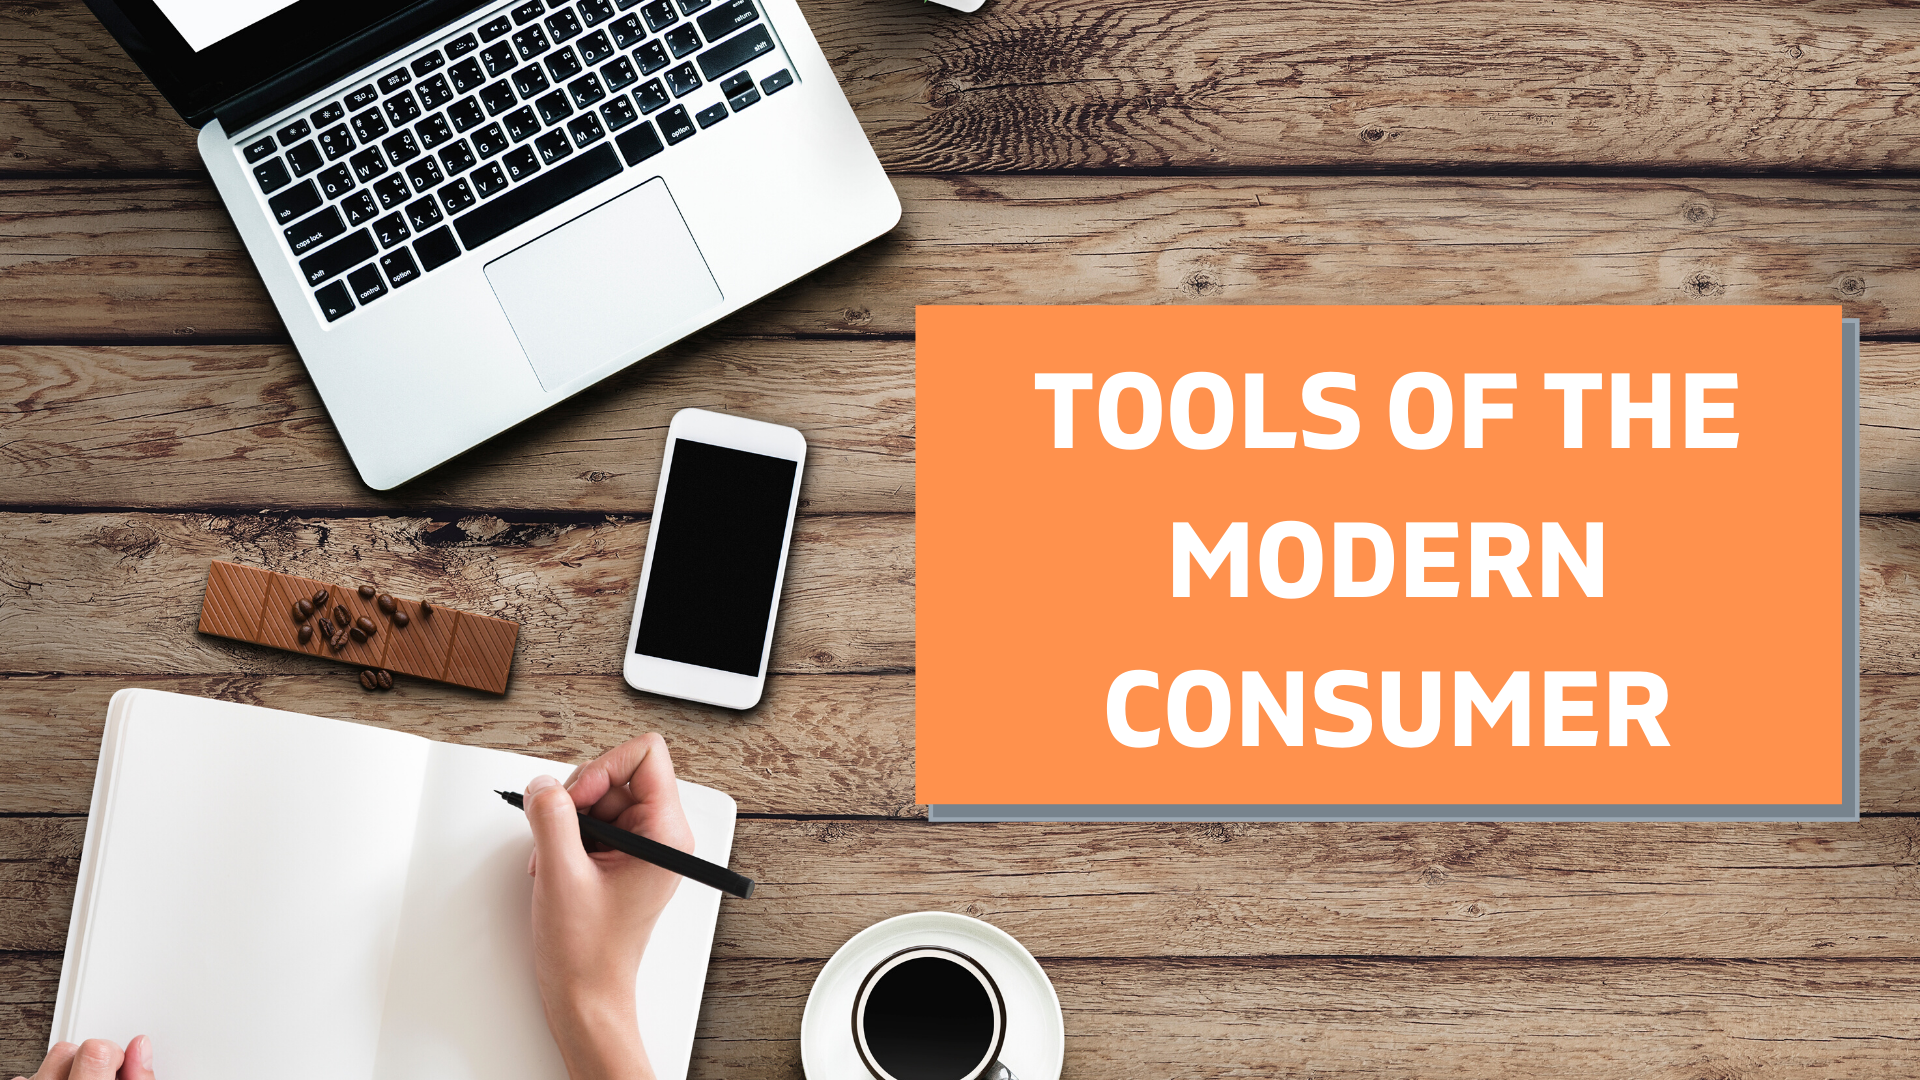 Tools of the Modern Consumer